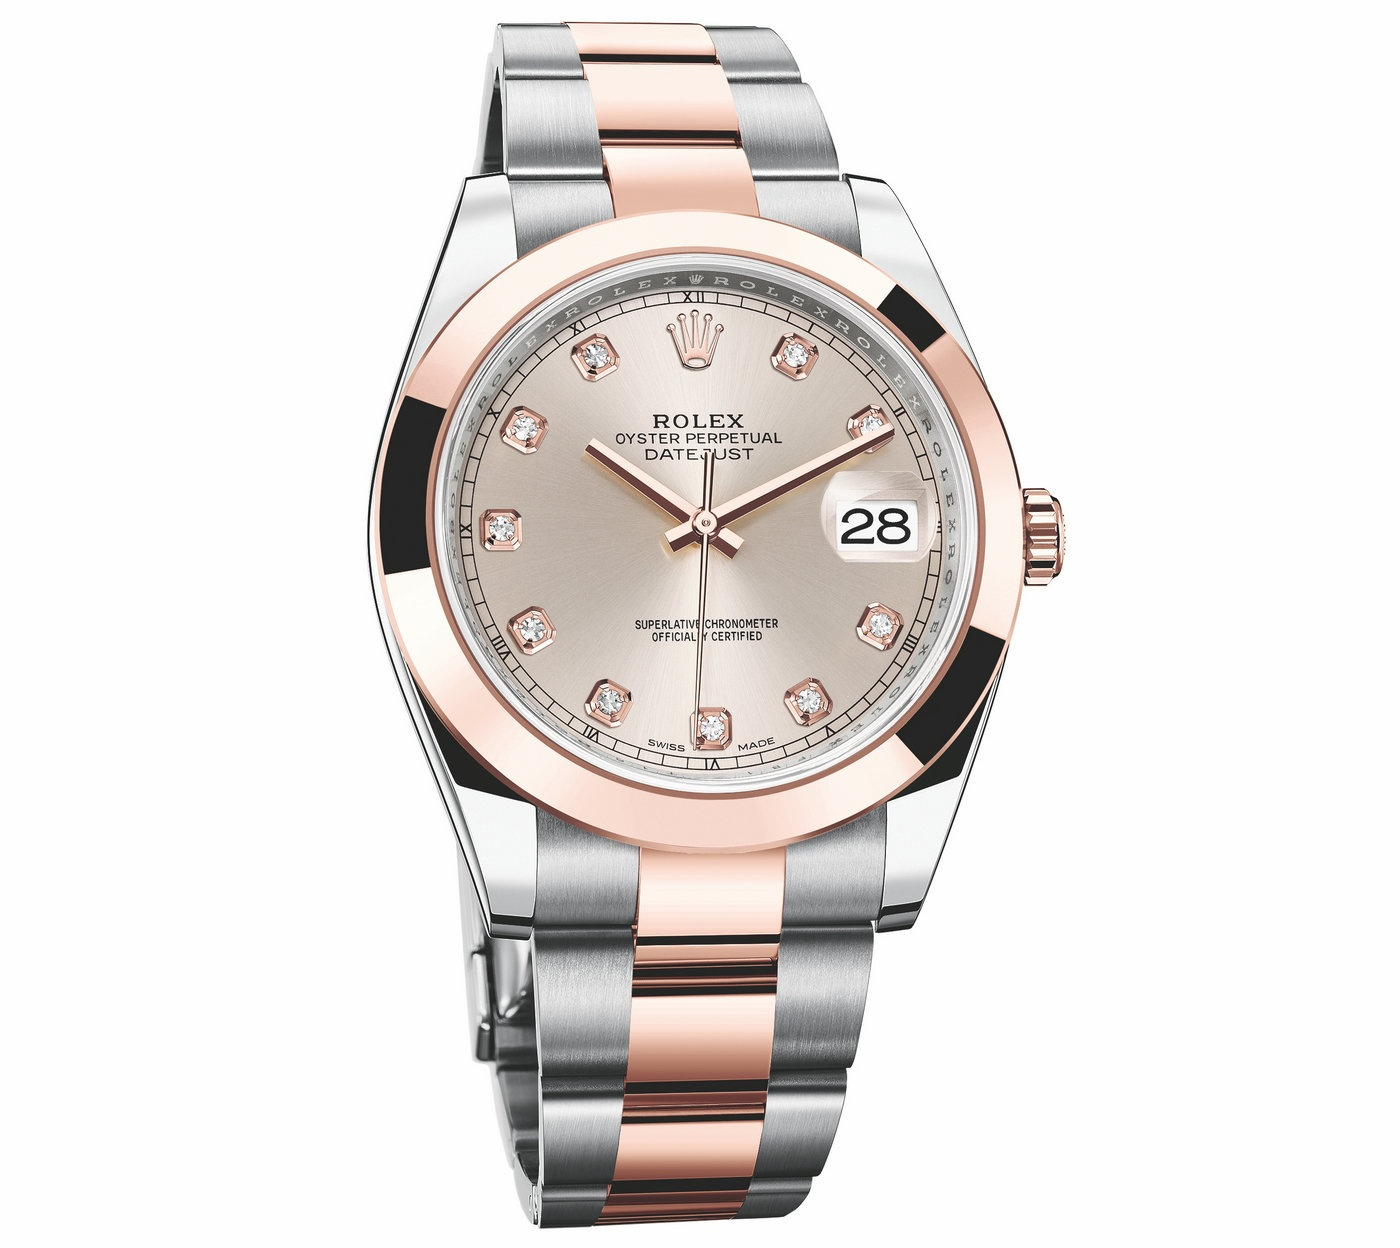 replica Rolex high quality watches